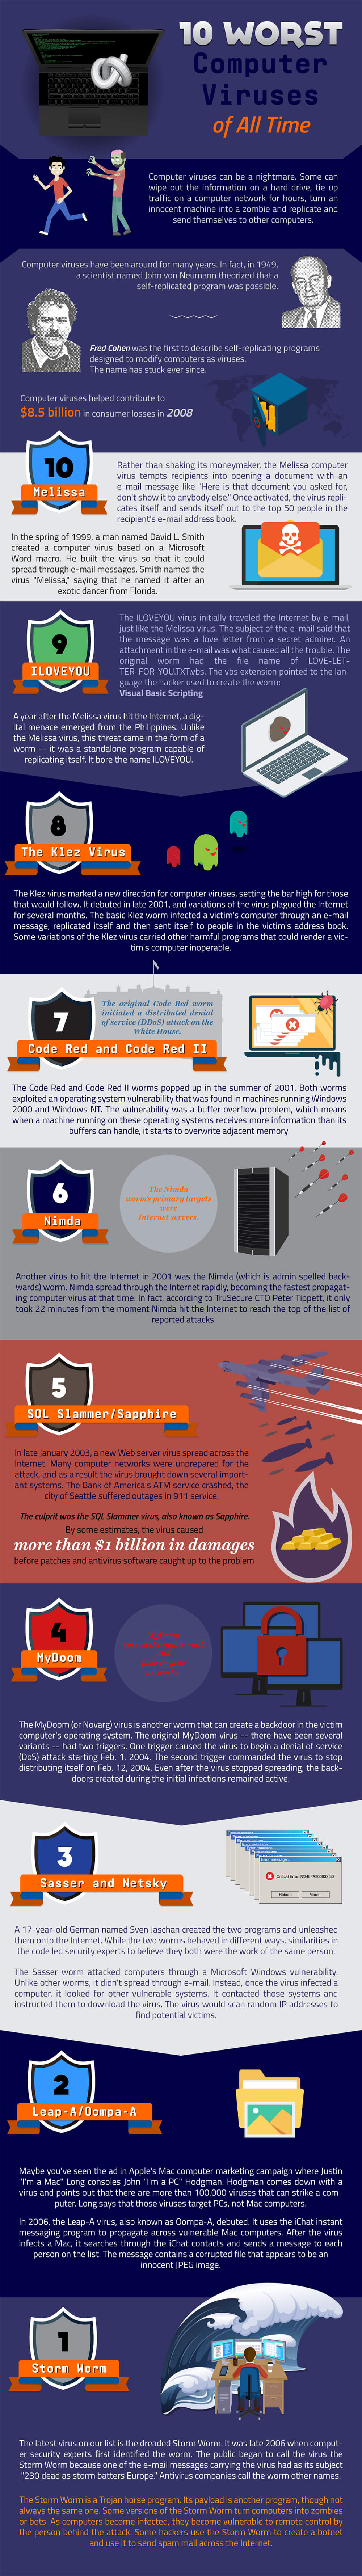 10-worst-computer-viruses-infographic-plaza